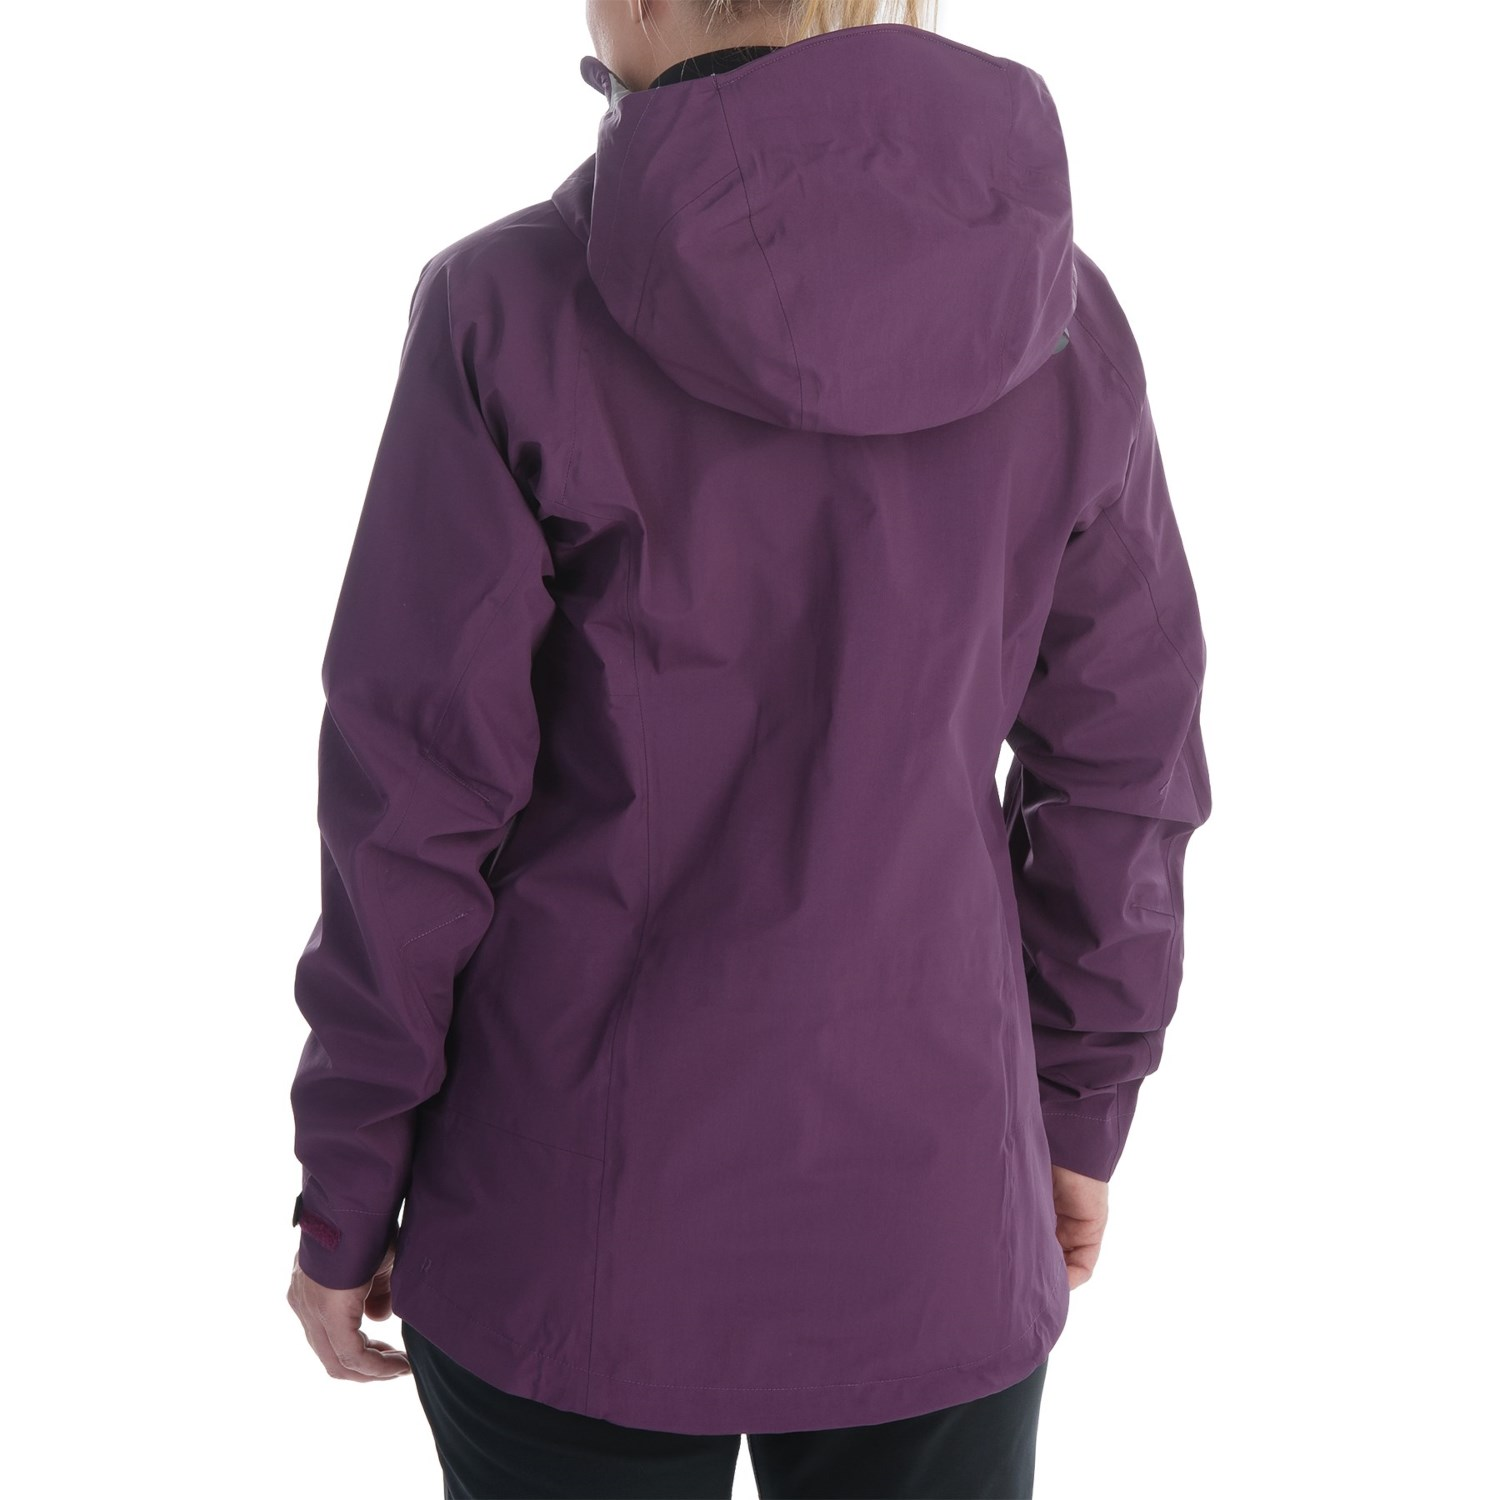 vintertilbud montane womens direct ascent event jacket